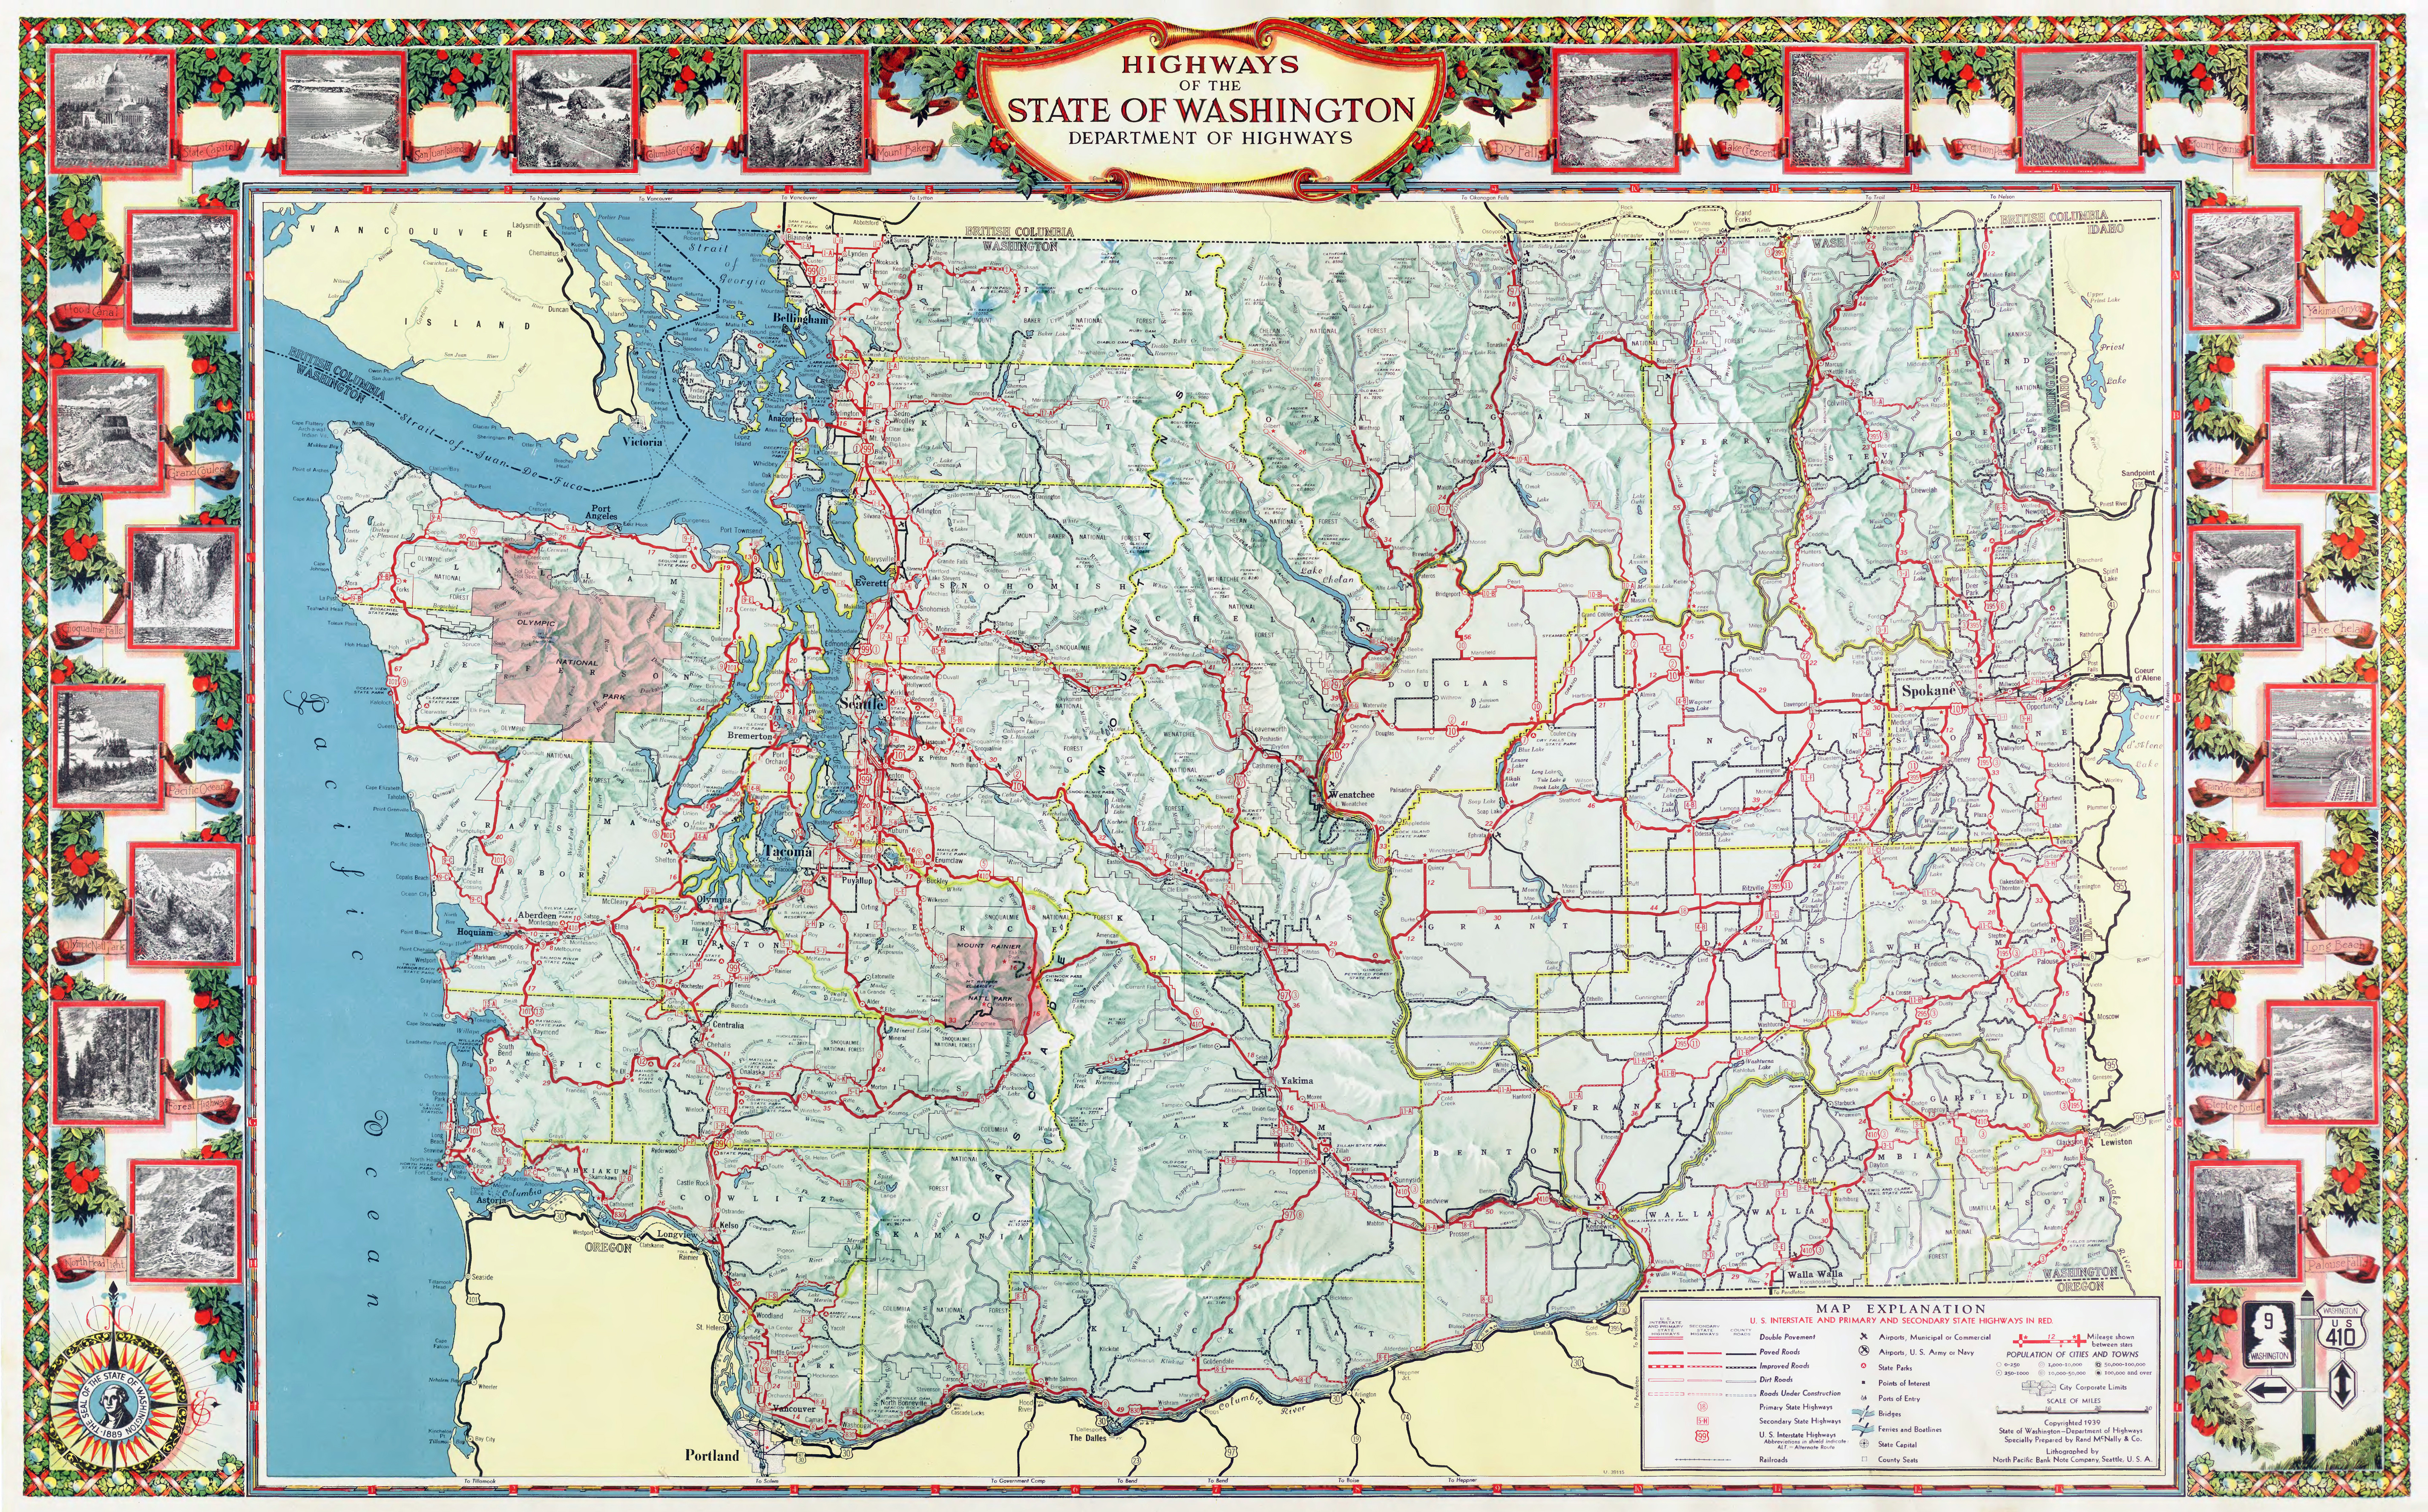 Large Scale Detailed Highway Map Of The State Of Washington With - Map of state of washington